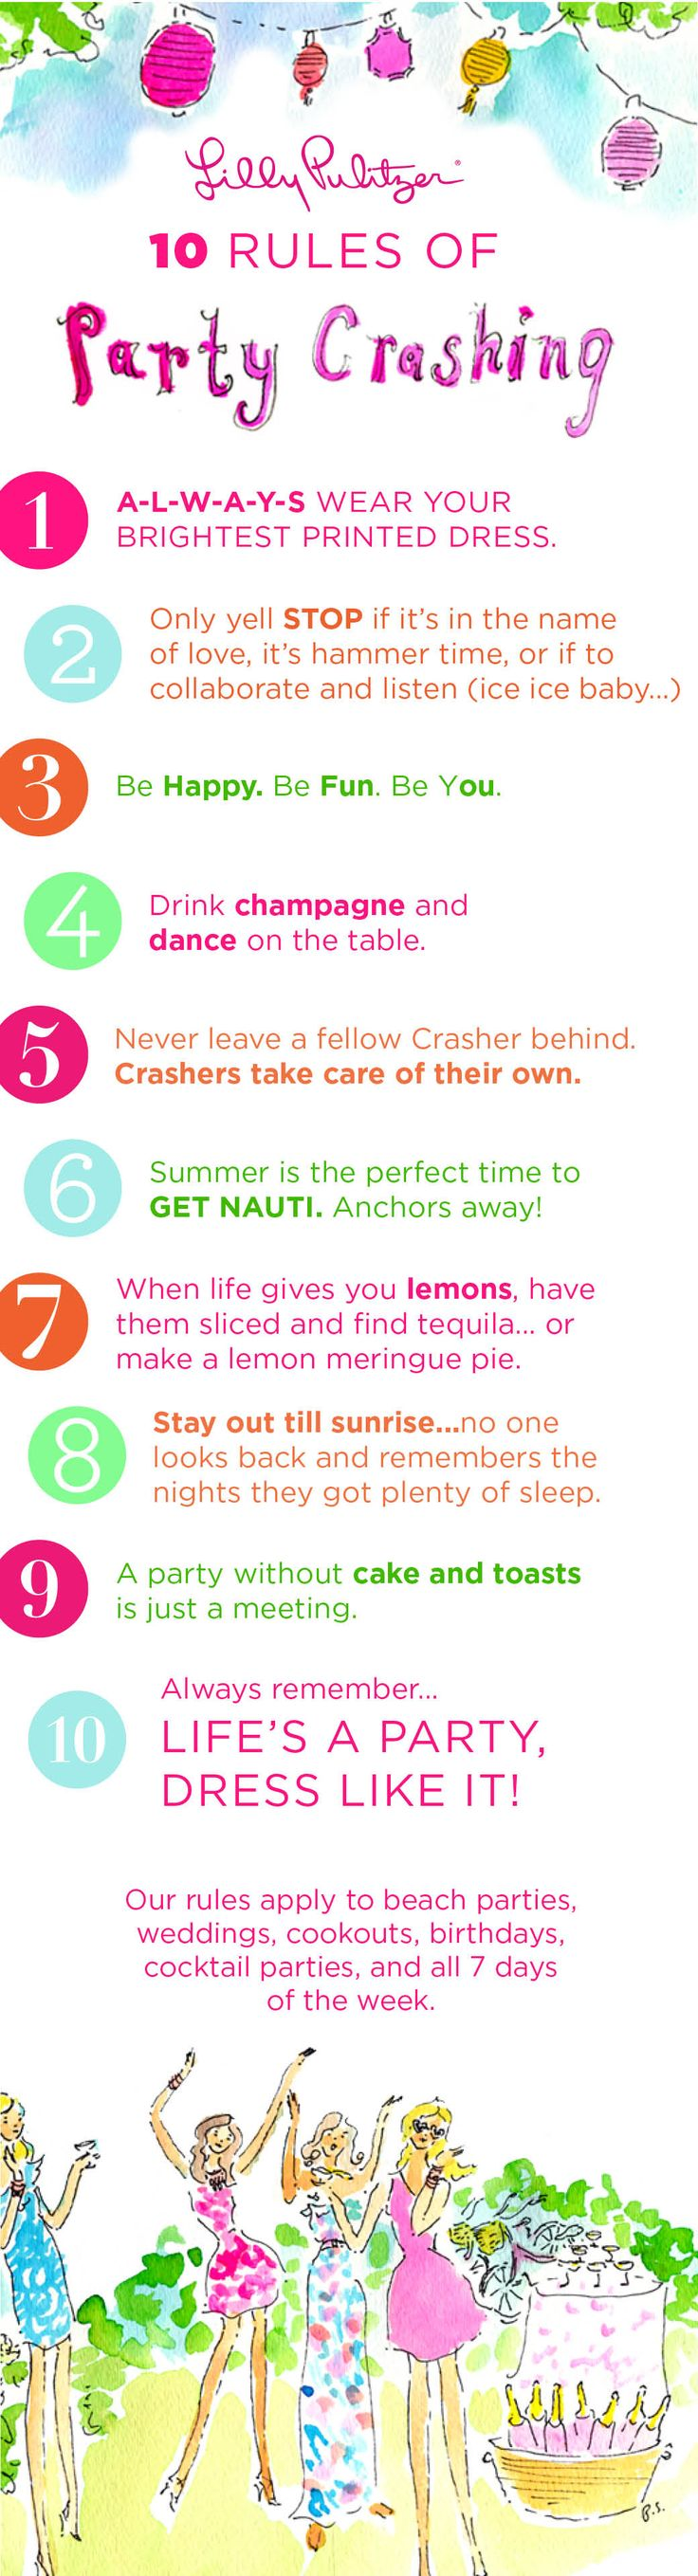 Lilly Pulitzer's 10 Rules of Party Crashing